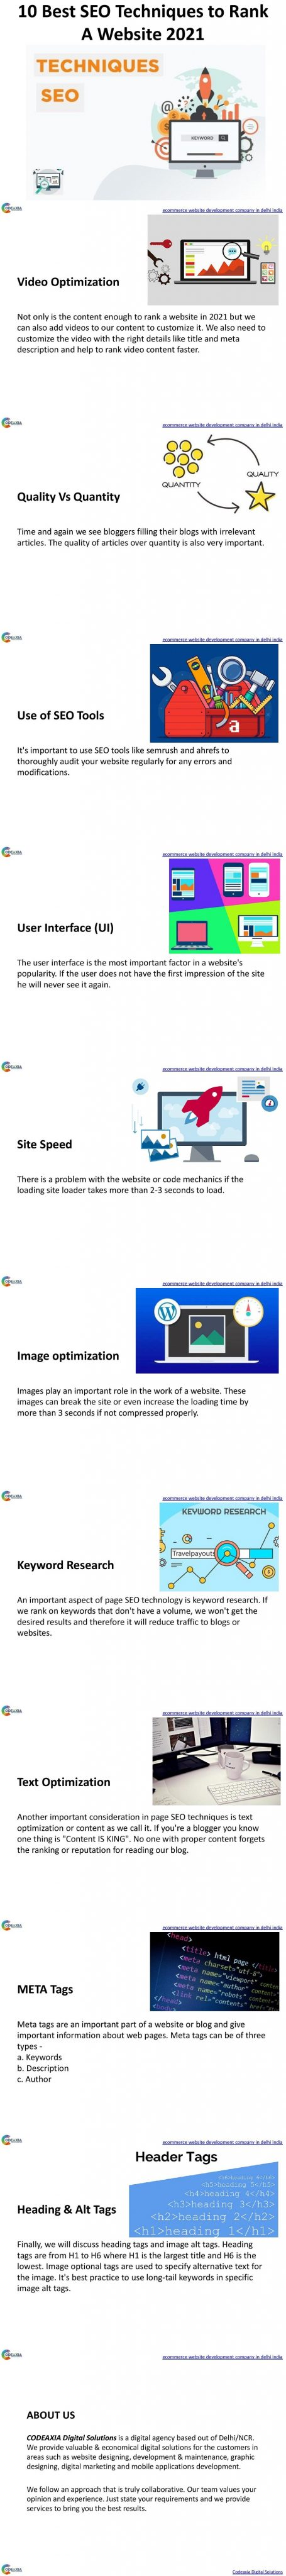 10 Best SEO Techniques to Rank a Website 2021